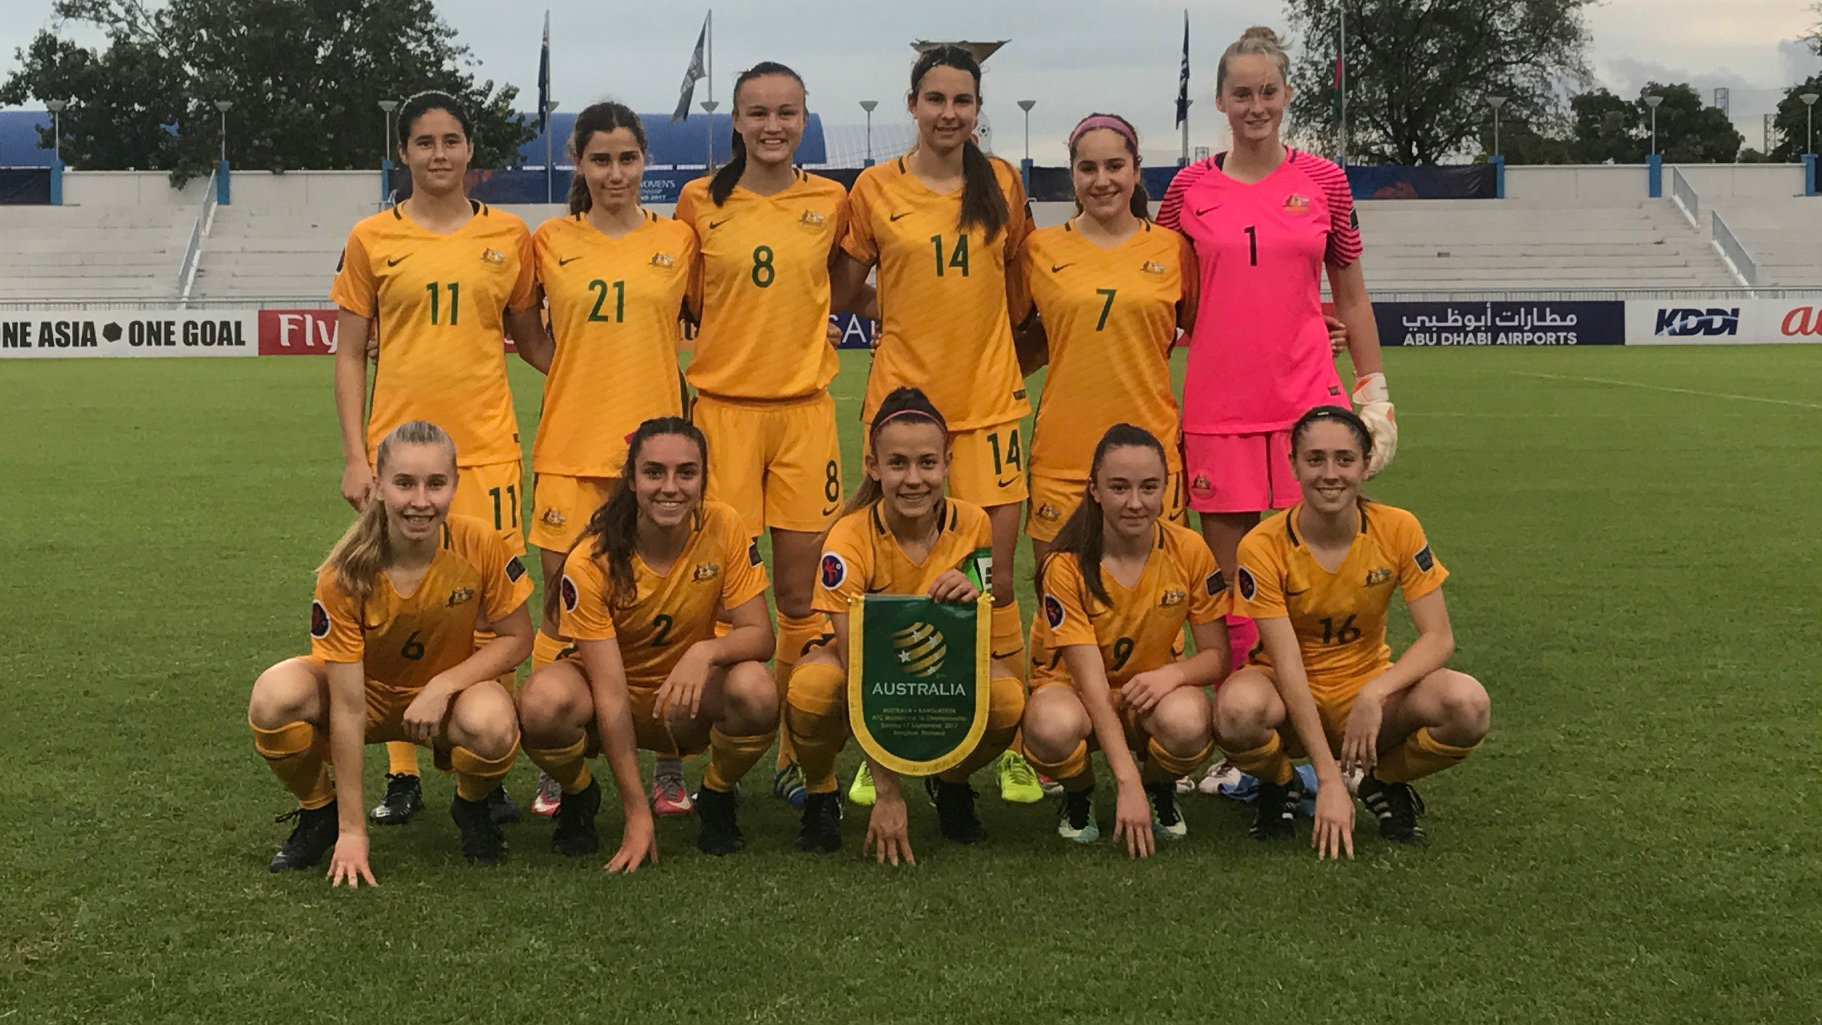 The Westfield Junior Matildas rounded out their AFC U-16 Women's Championship 2017 campaign with a 3-2 win over Bangladesh